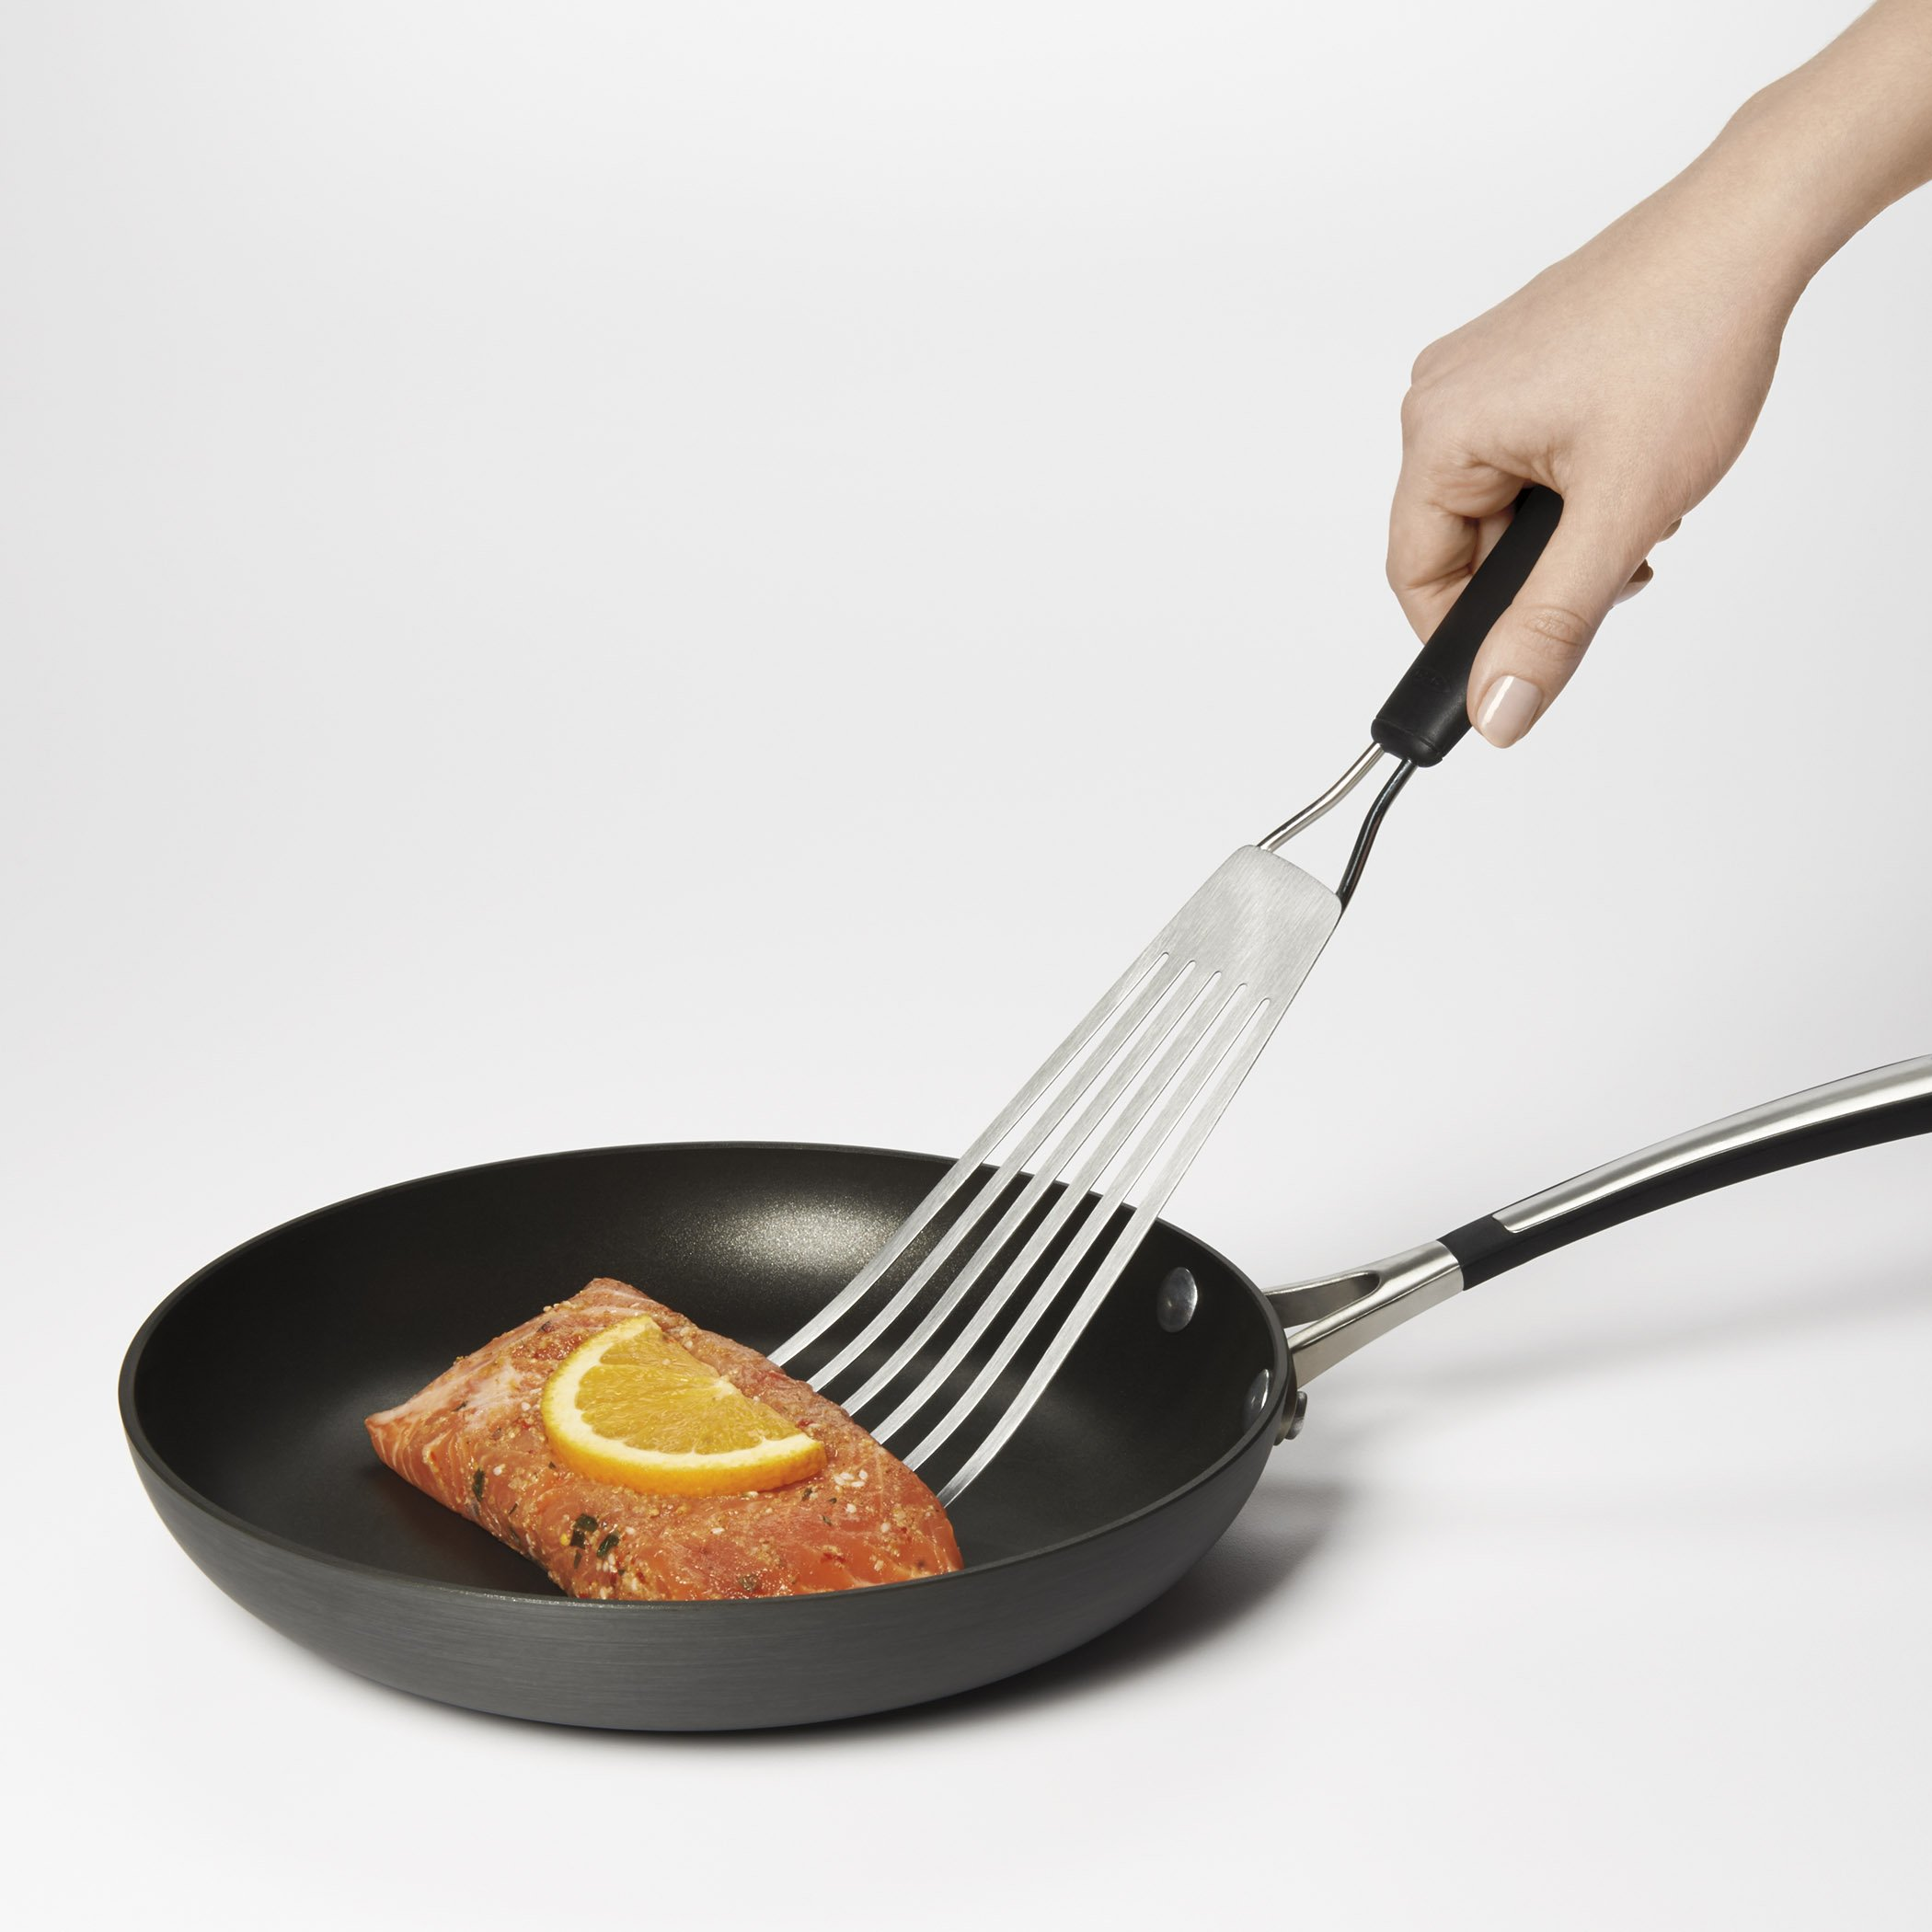 OXO Good Grips Fish Turner by OXO